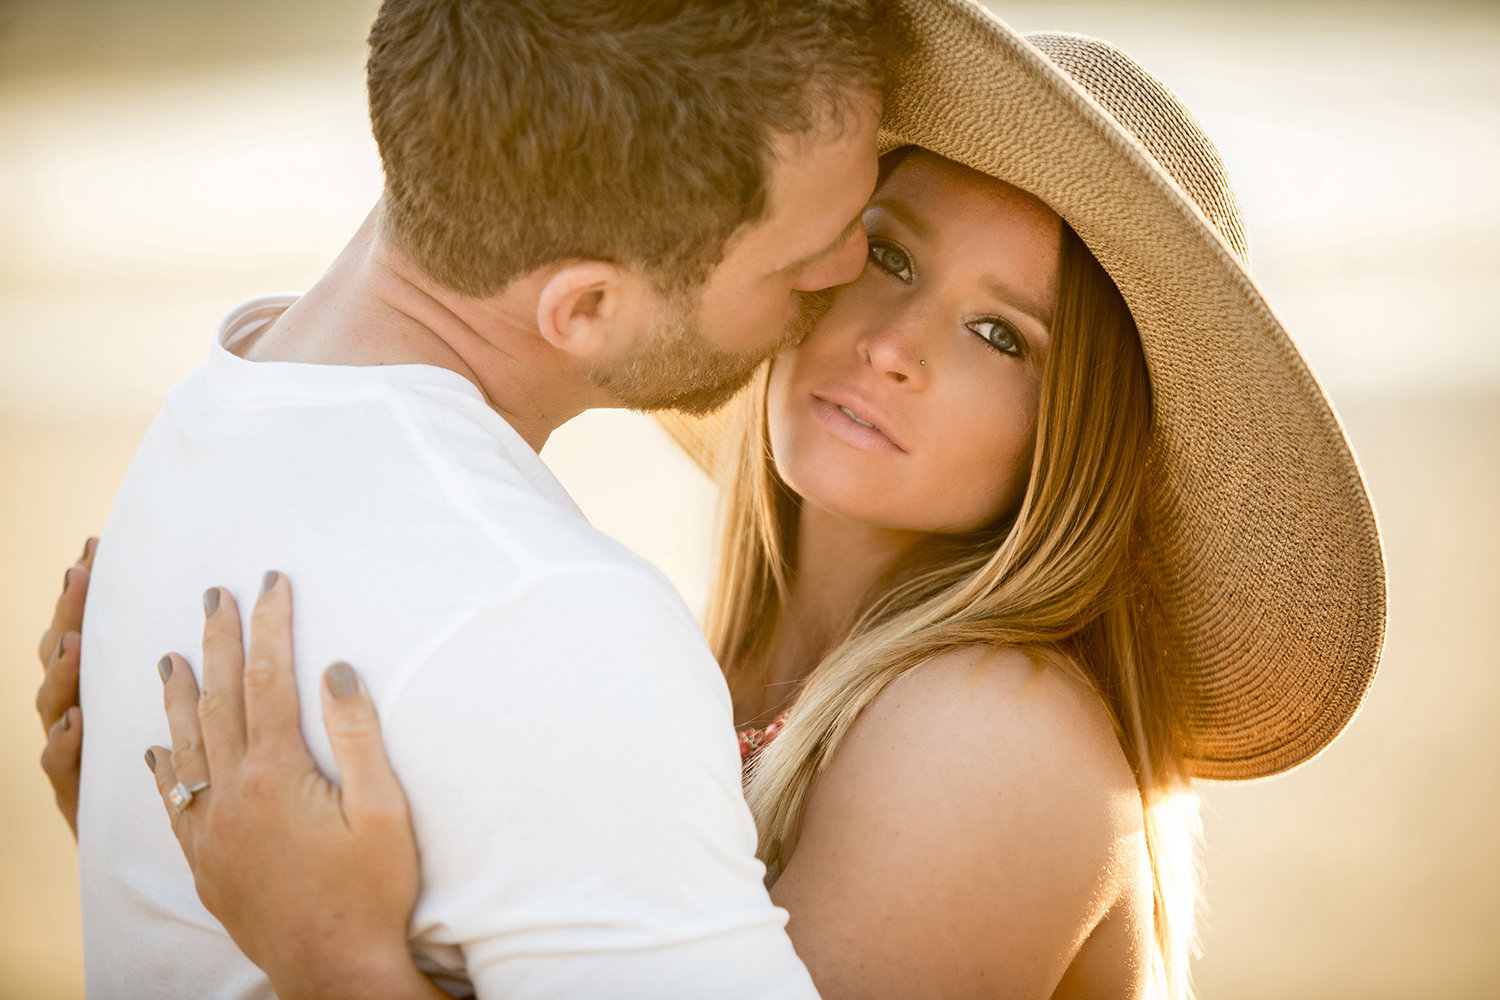 La Jolla Shores engagement photos stunning couple shot